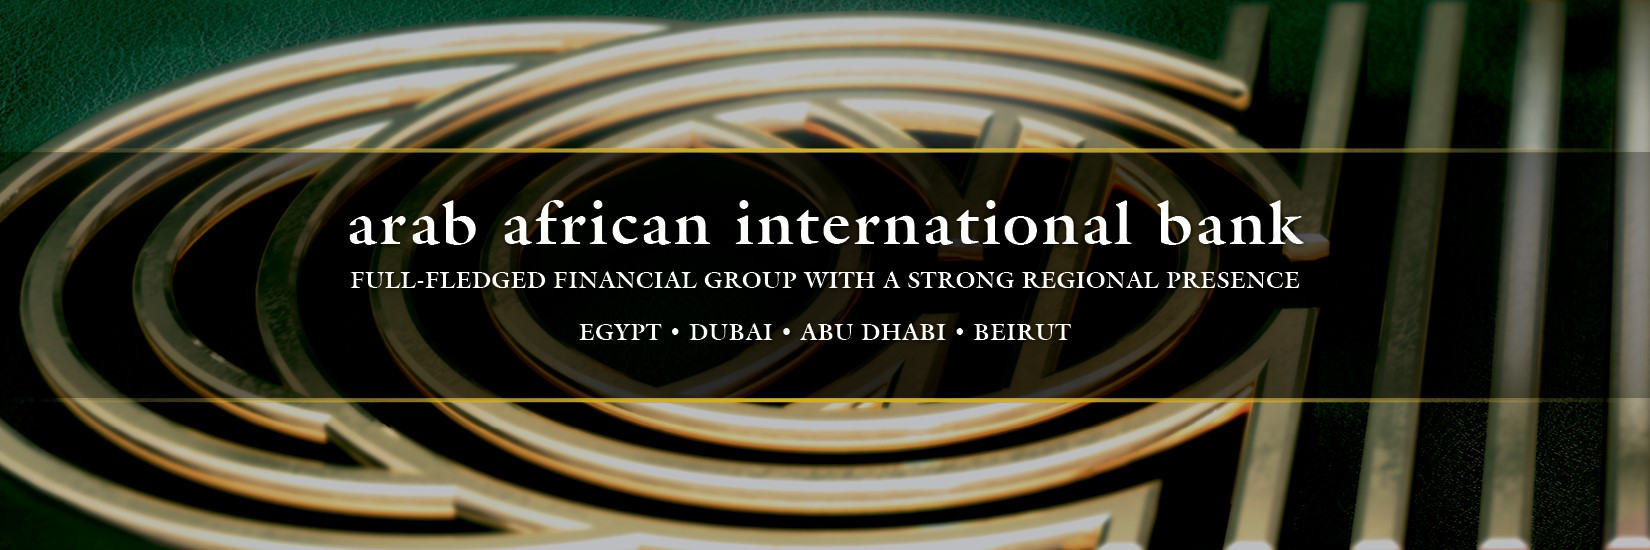 Arab African International Bank - Personal